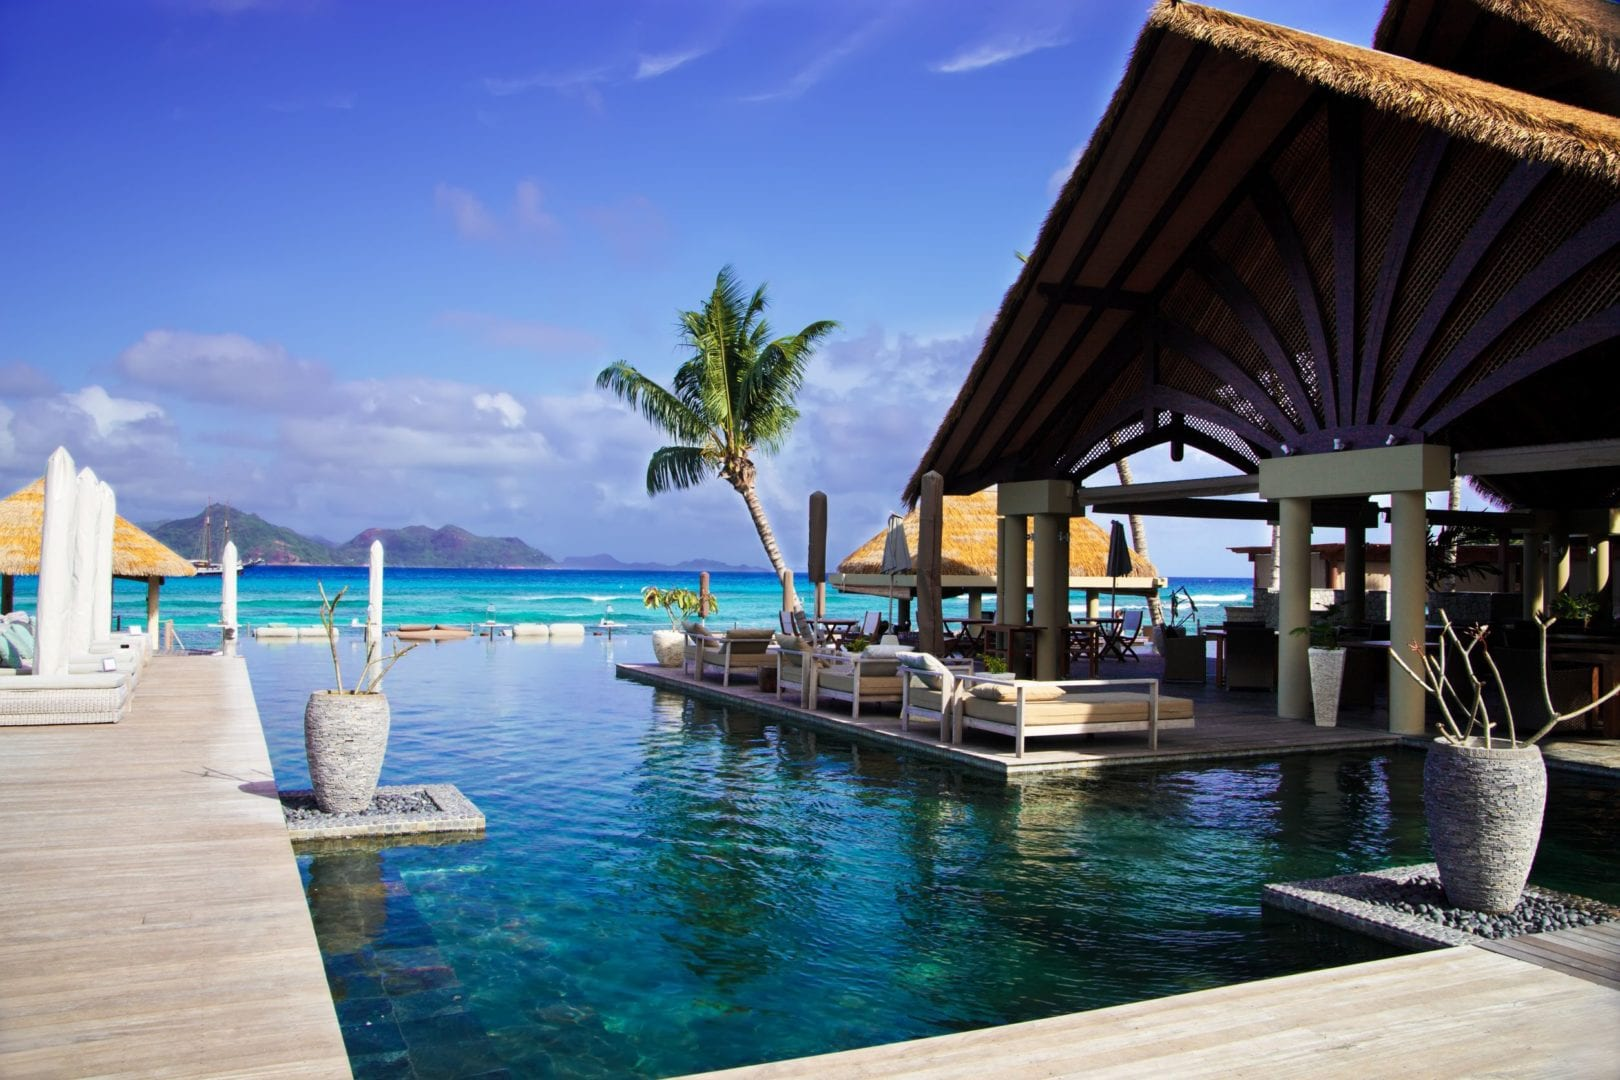 Top 5 Most Luxurious Timeshares for a HighEnd Escape